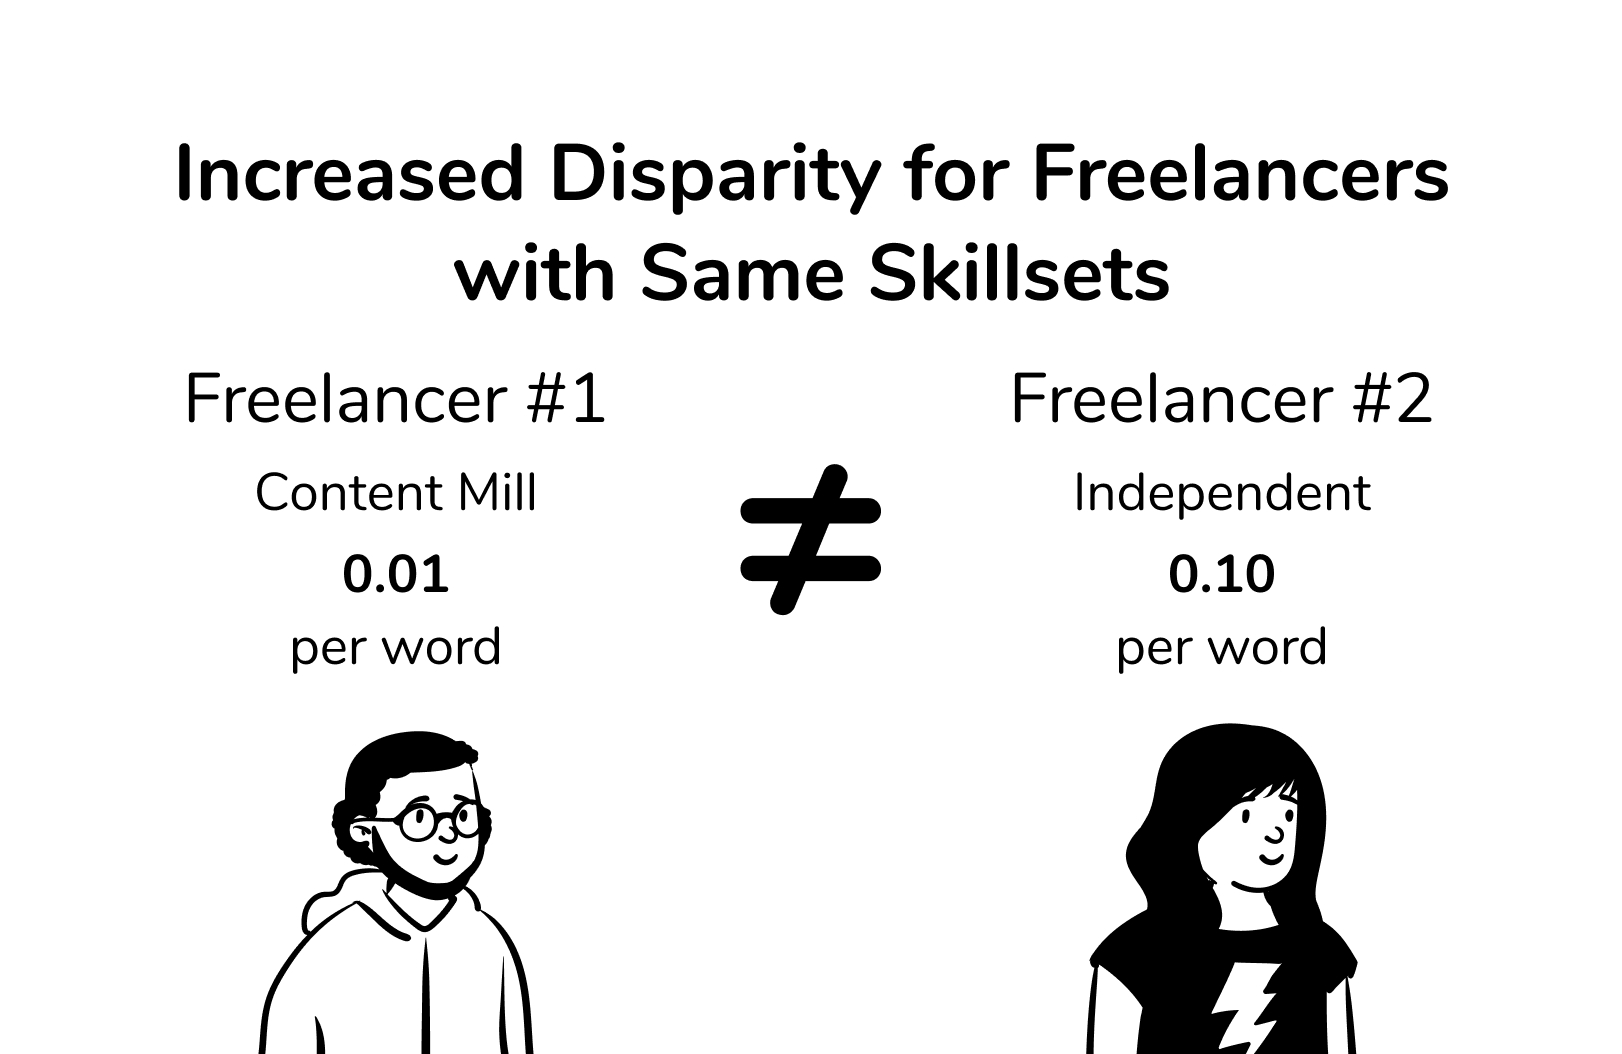 A comparison showing how a content mill freelancer and an independent freelancer have different rates.